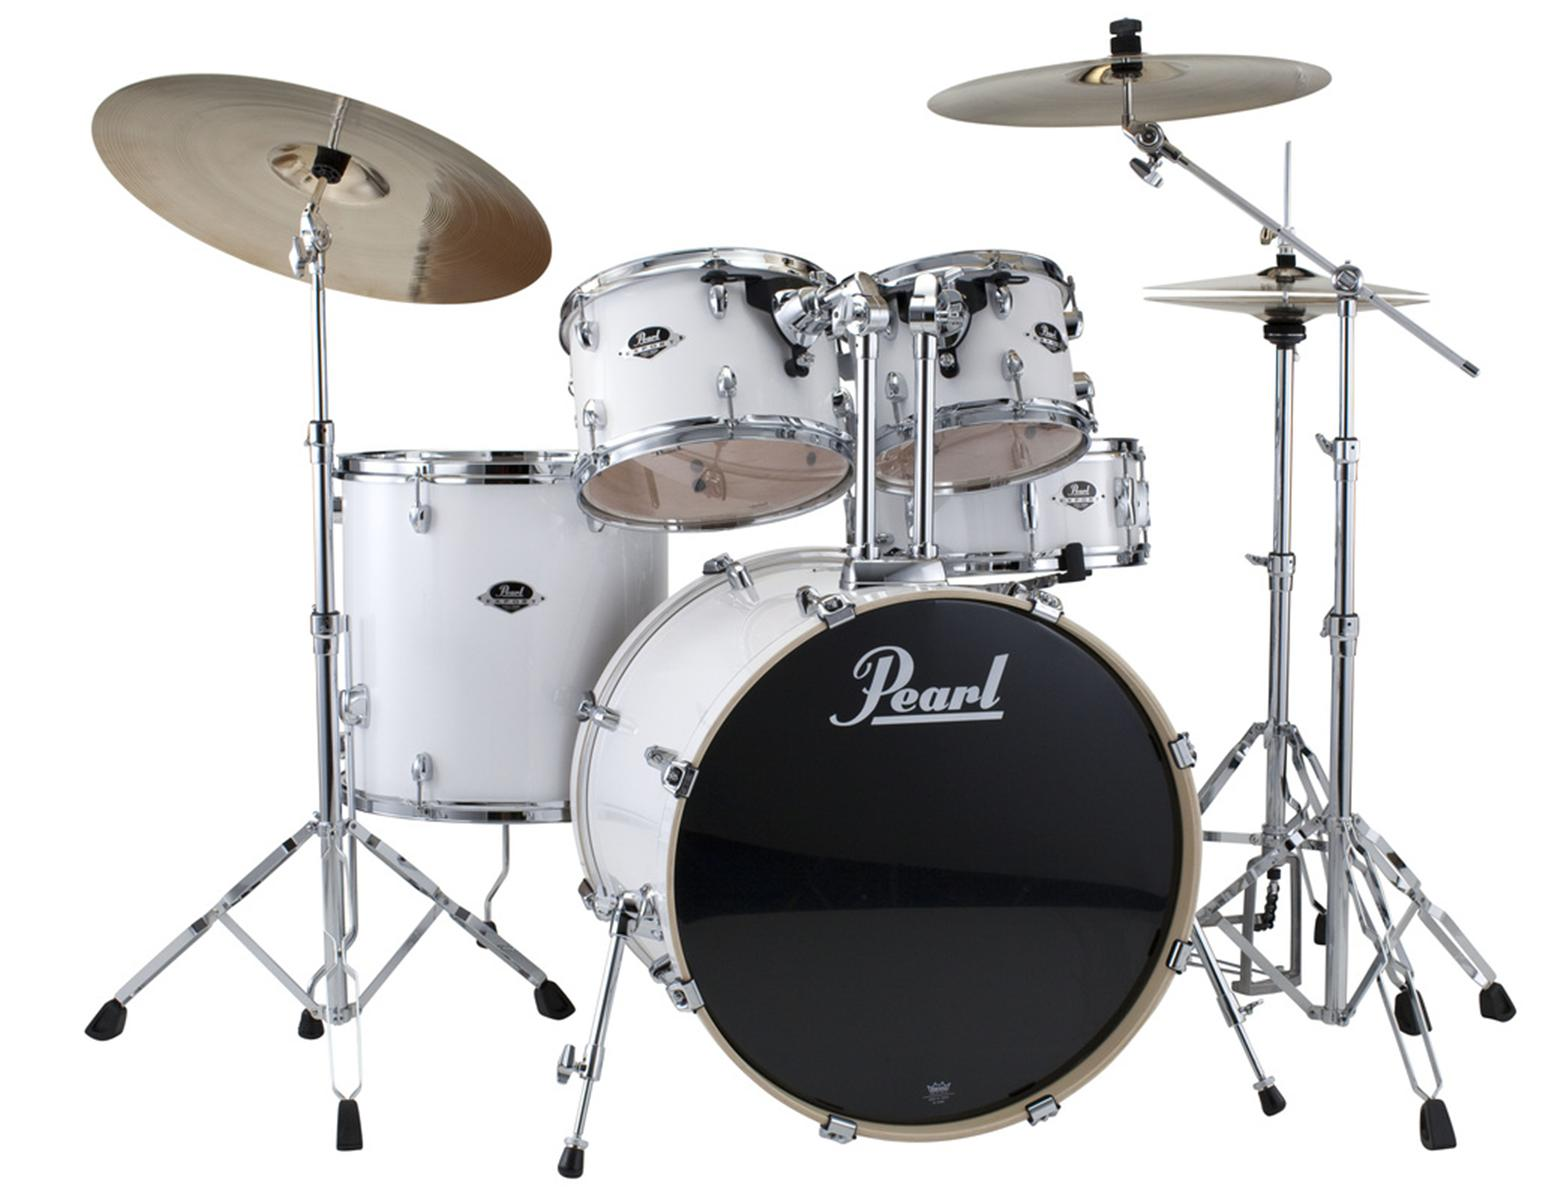 Best Budget Drum Kit